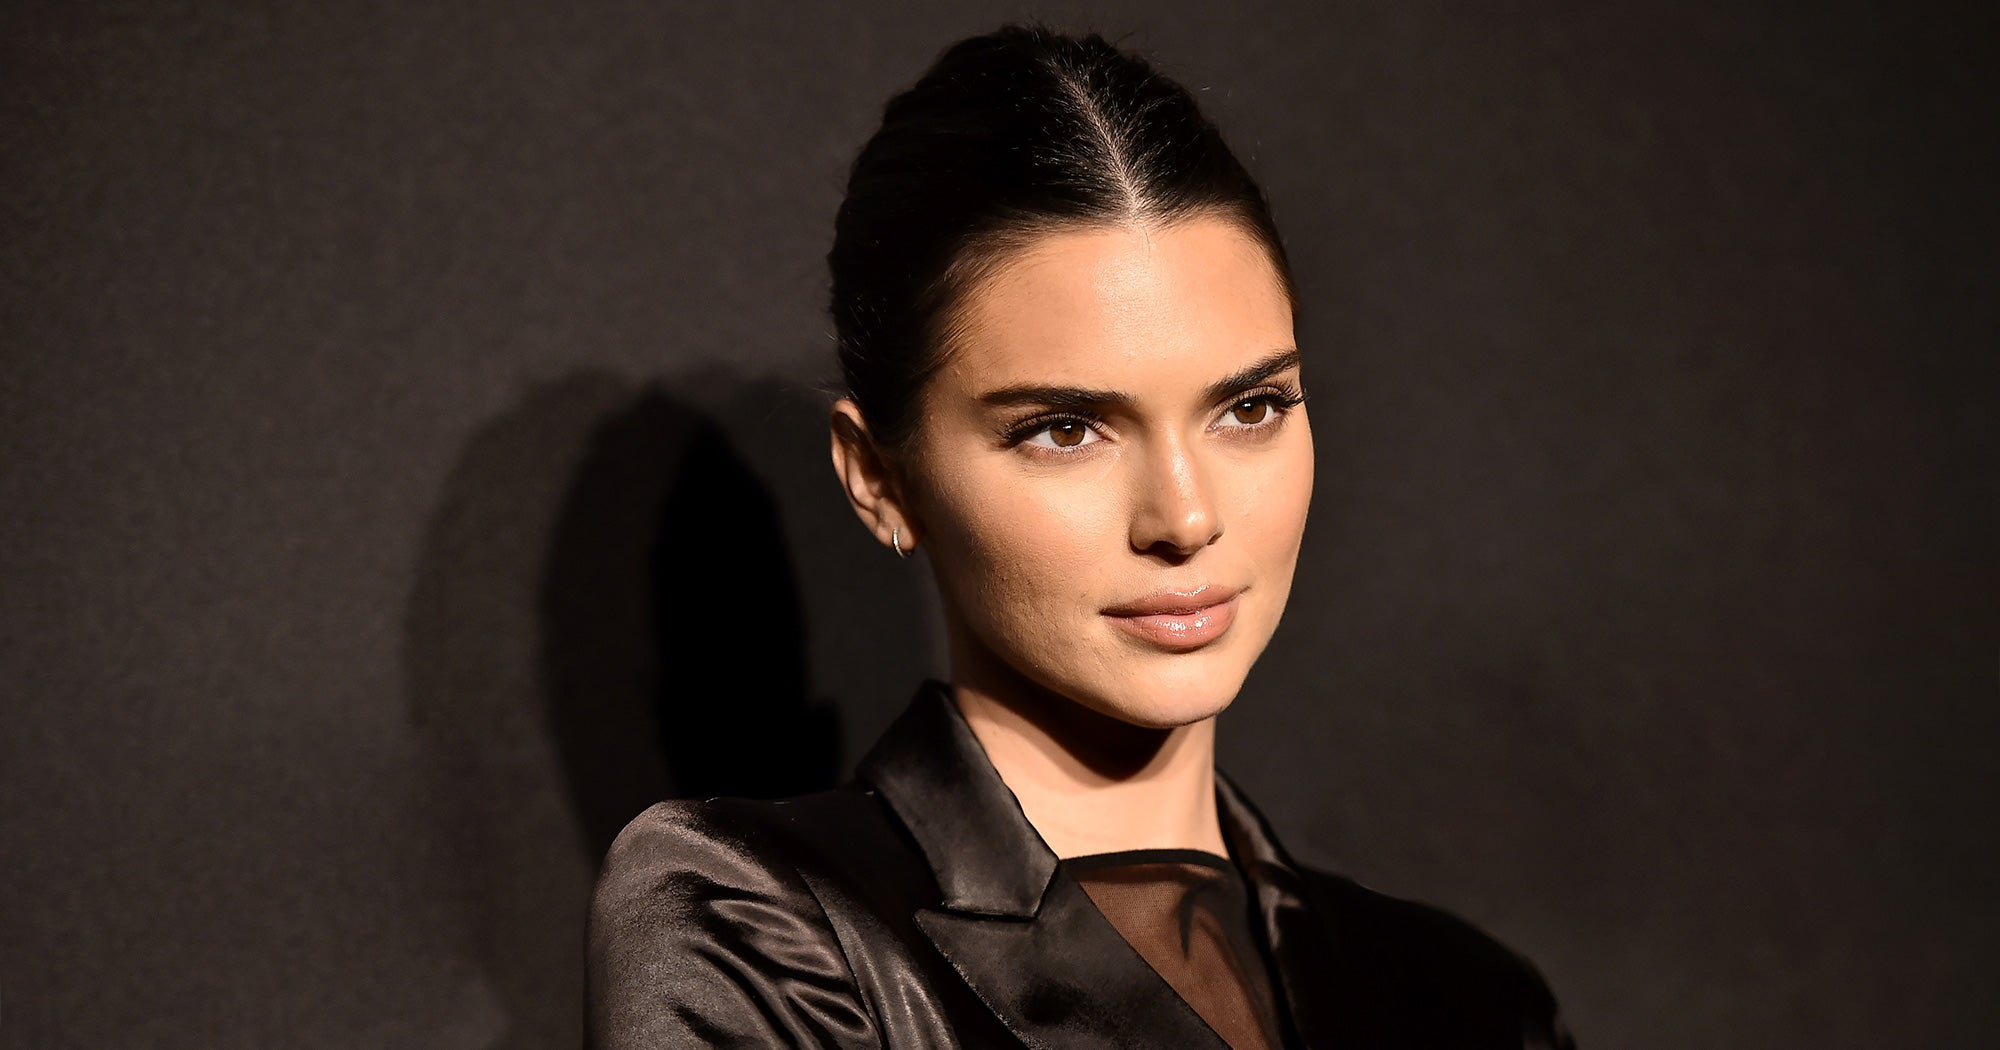 Kendall Jenner Beefs Up Security After Stalker Run Ins